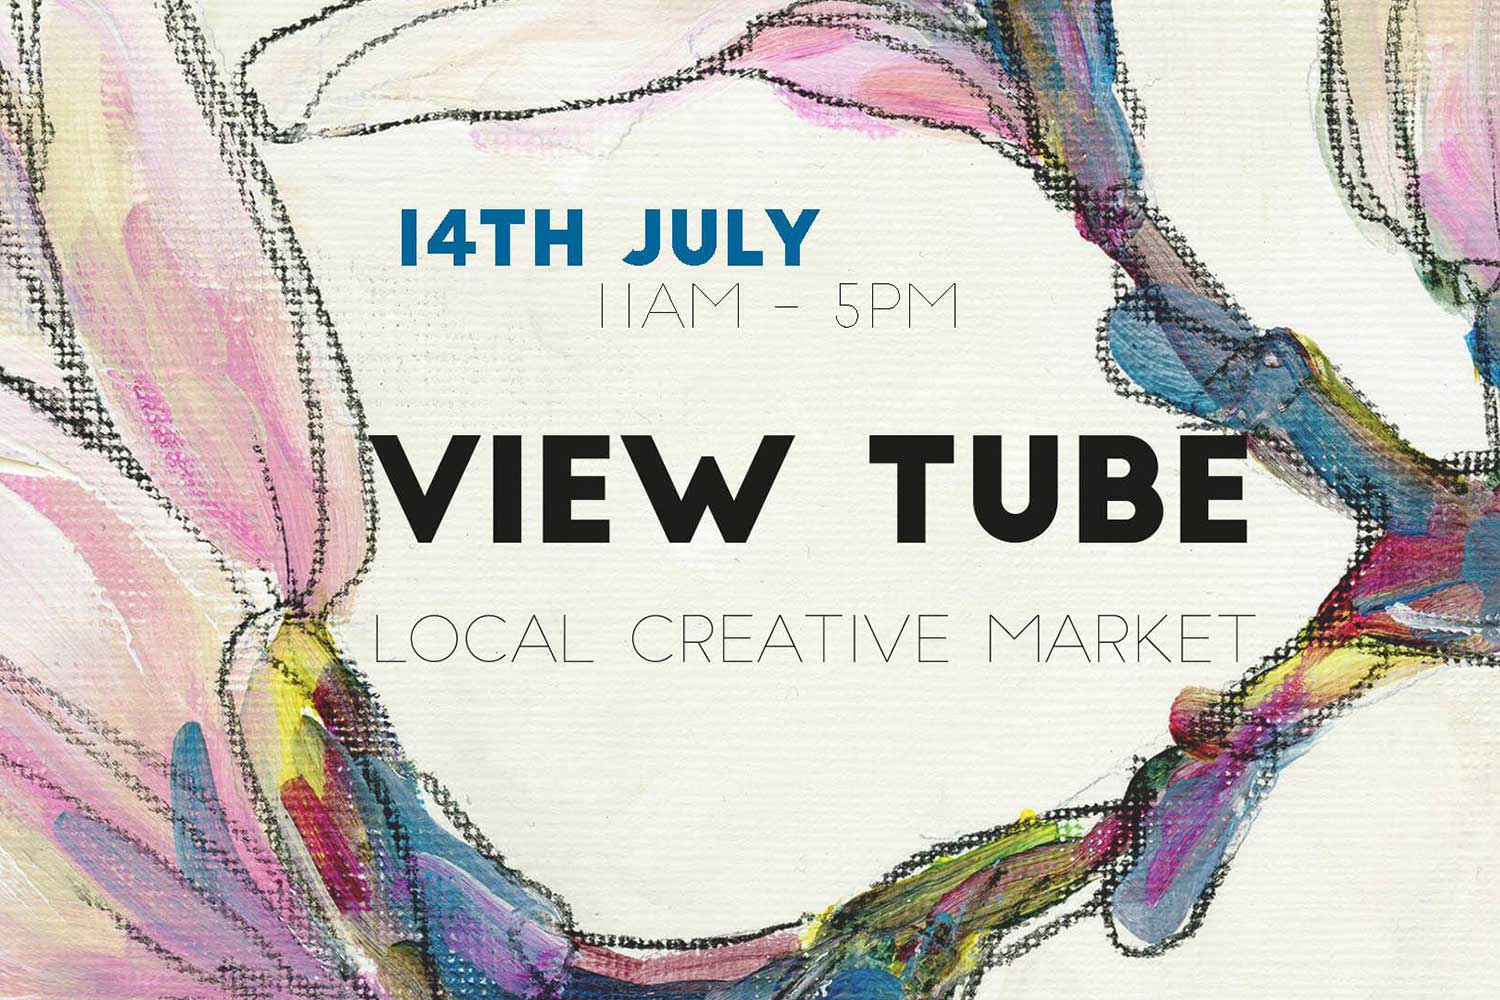 local creative market the view tube